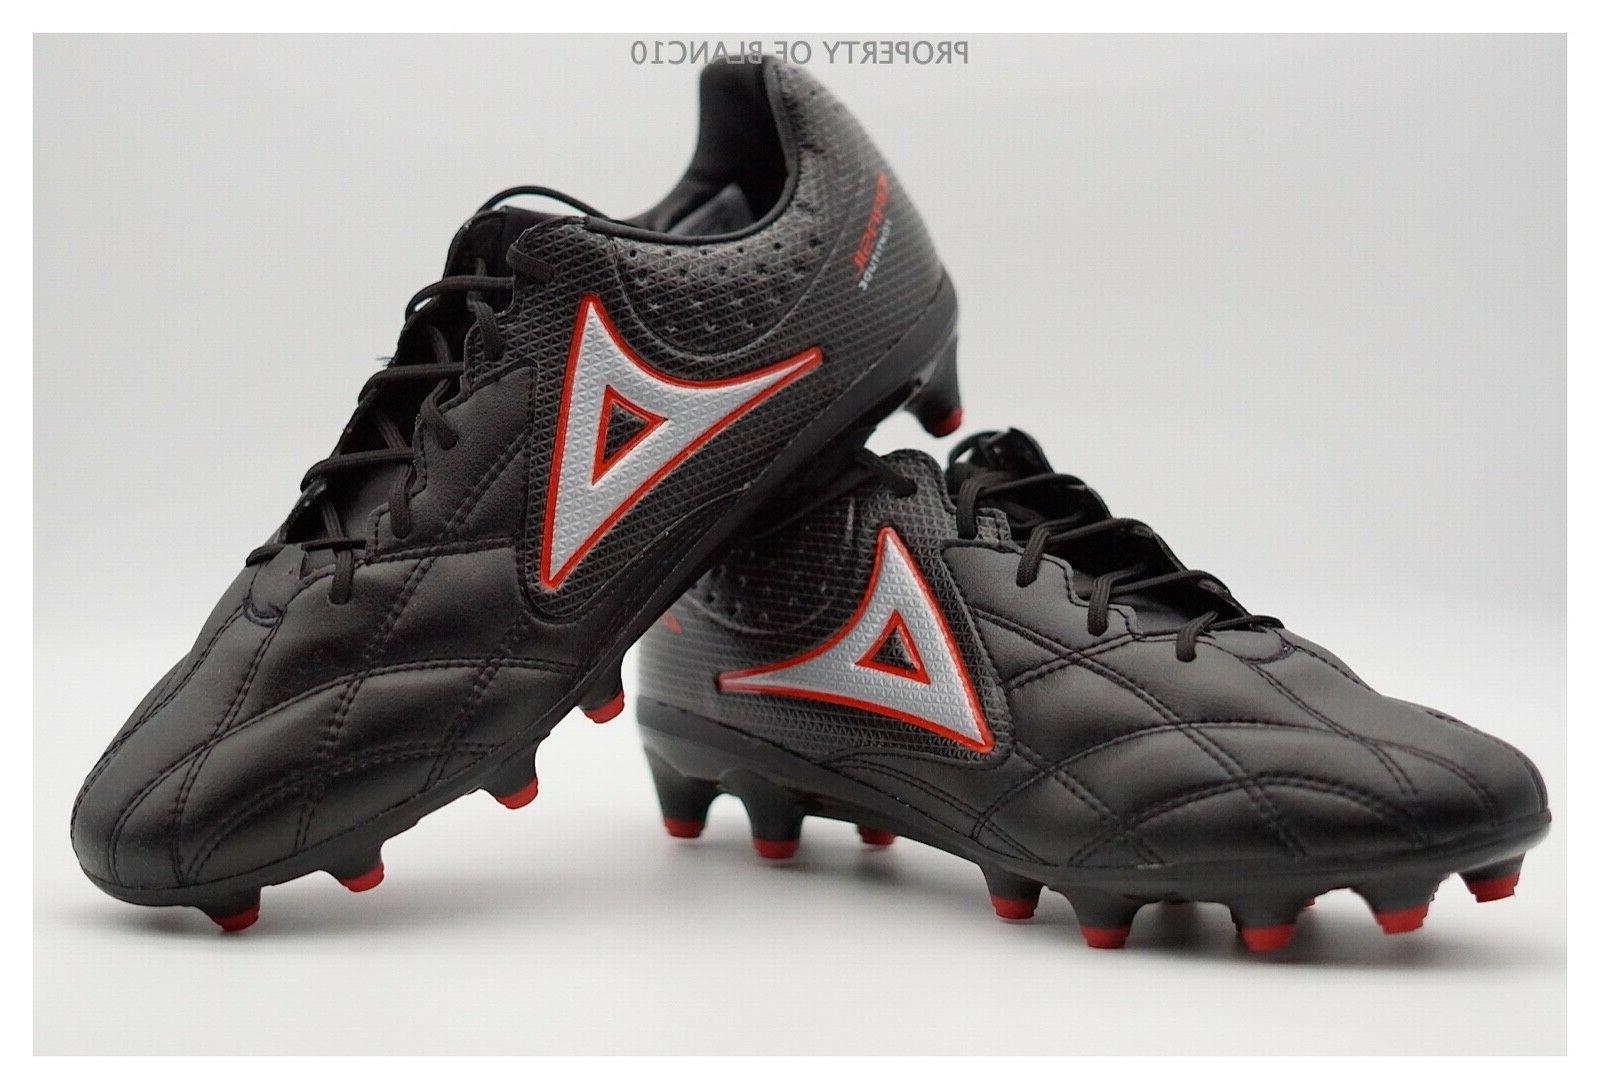 soccer cleats style 3015 black red brasil